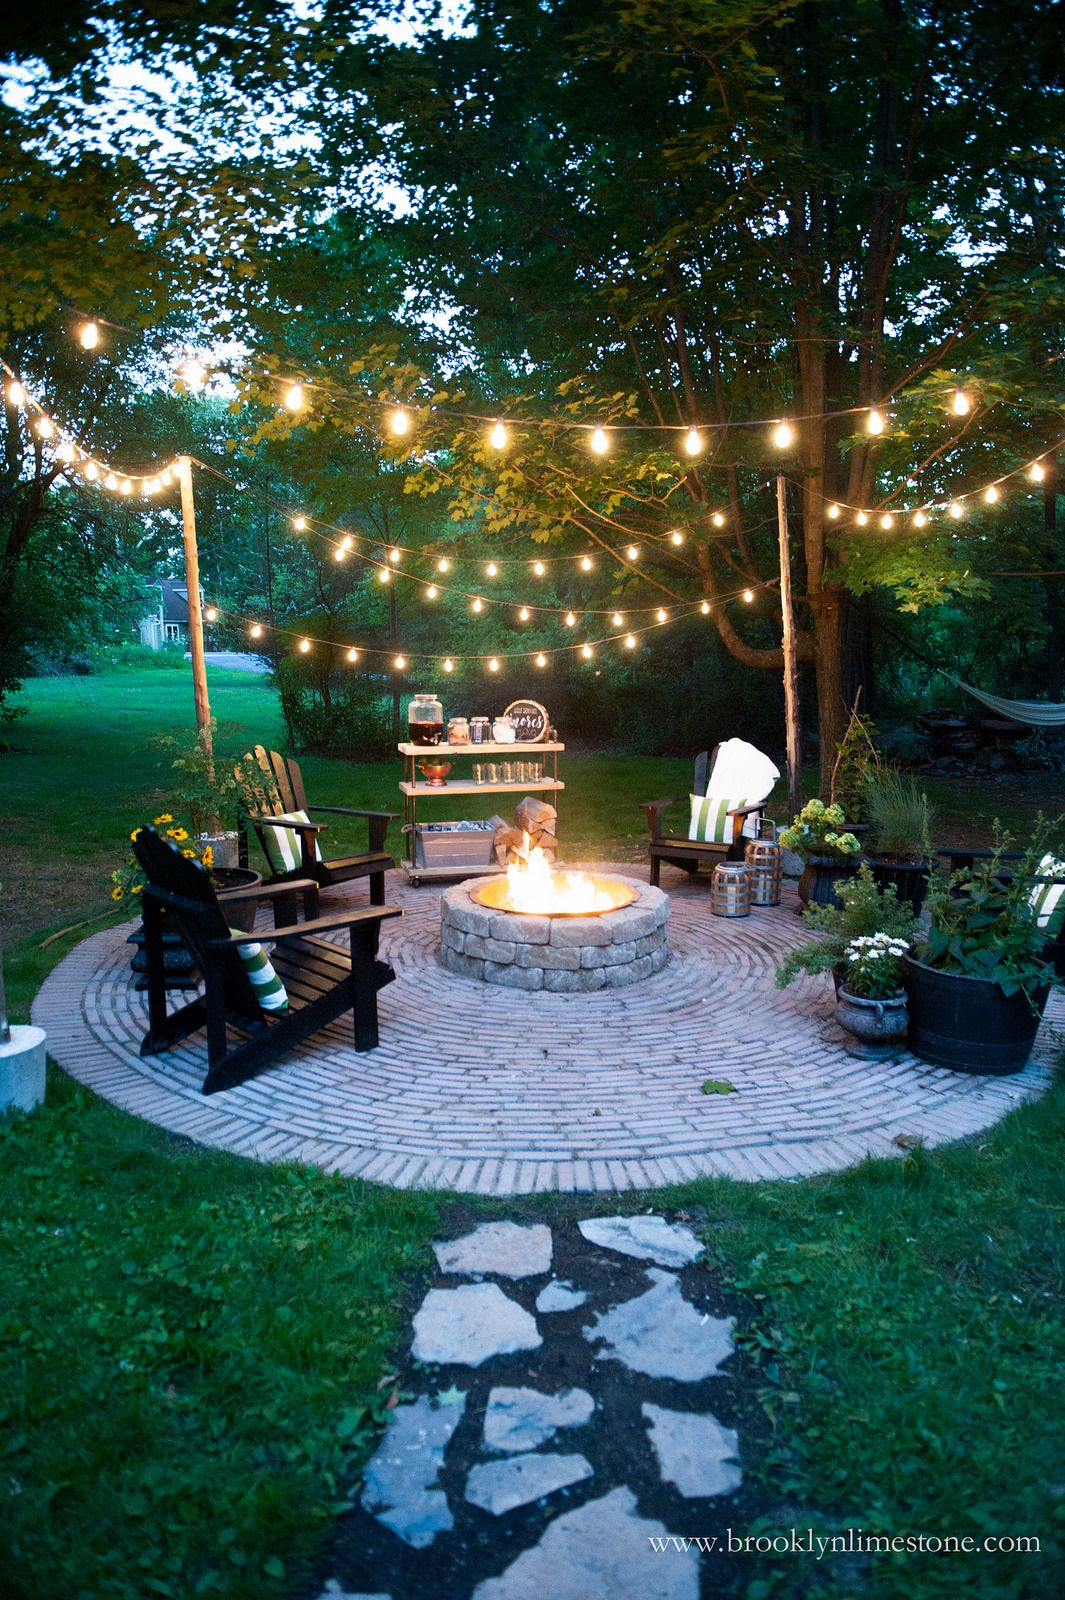 Firepit Patio Country Cottage Diy Circular Outdoor Entertaining Space Backyard Inspiration Backyard Backyard Fire